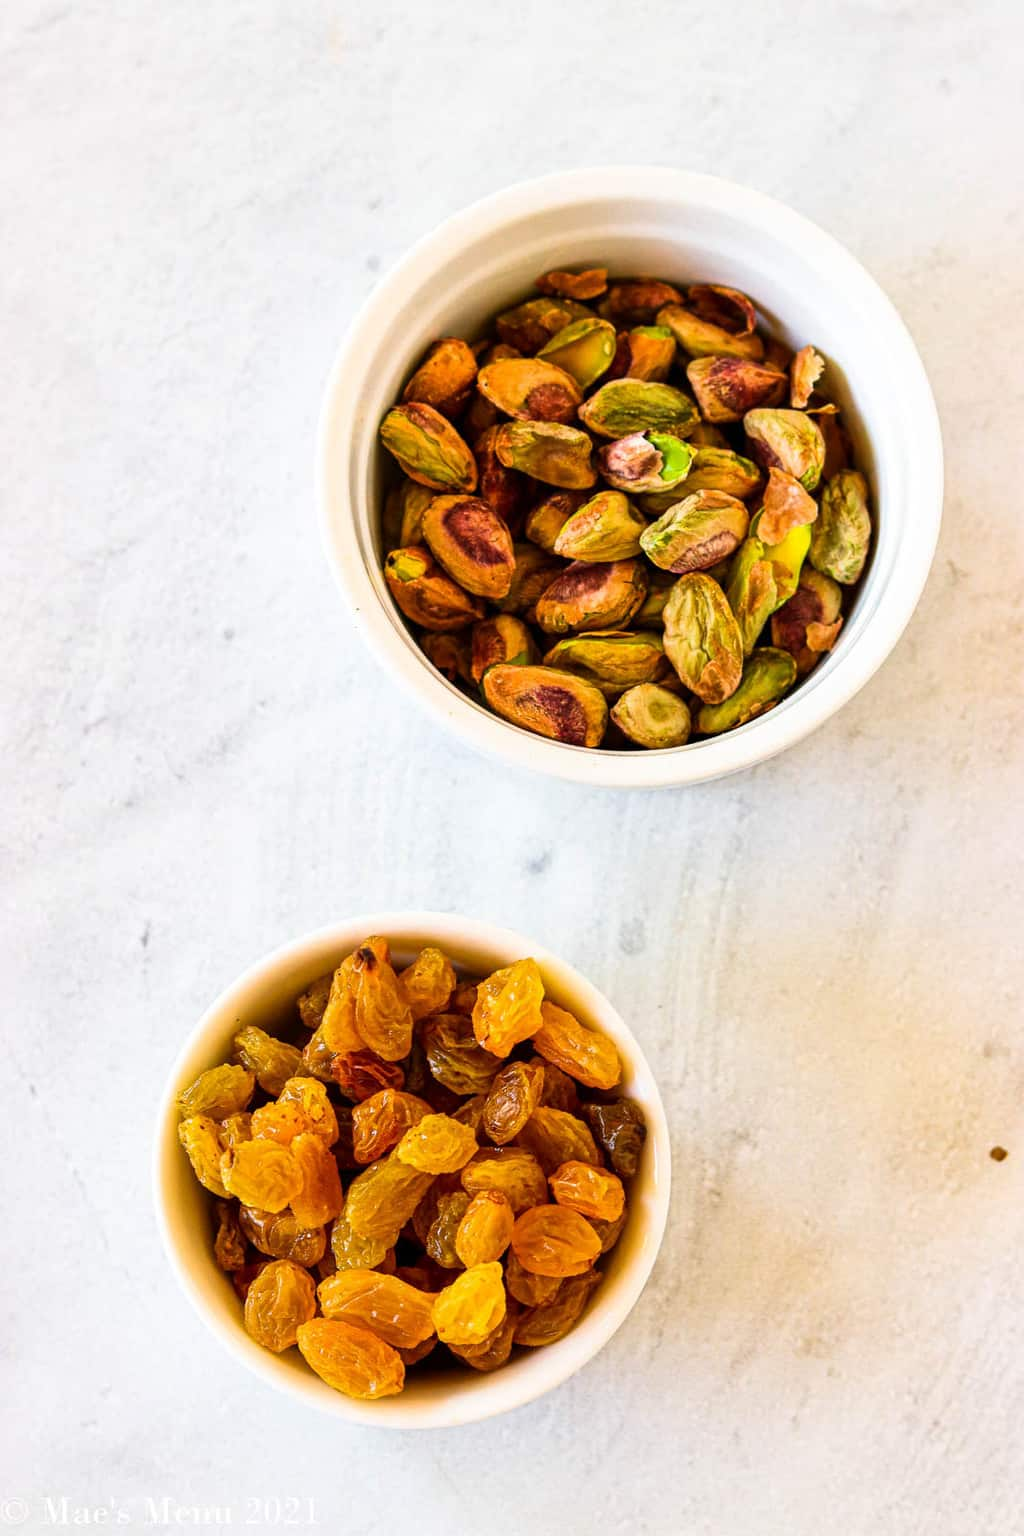 A small dish of golden raisins and a small cup of shelled pistachios